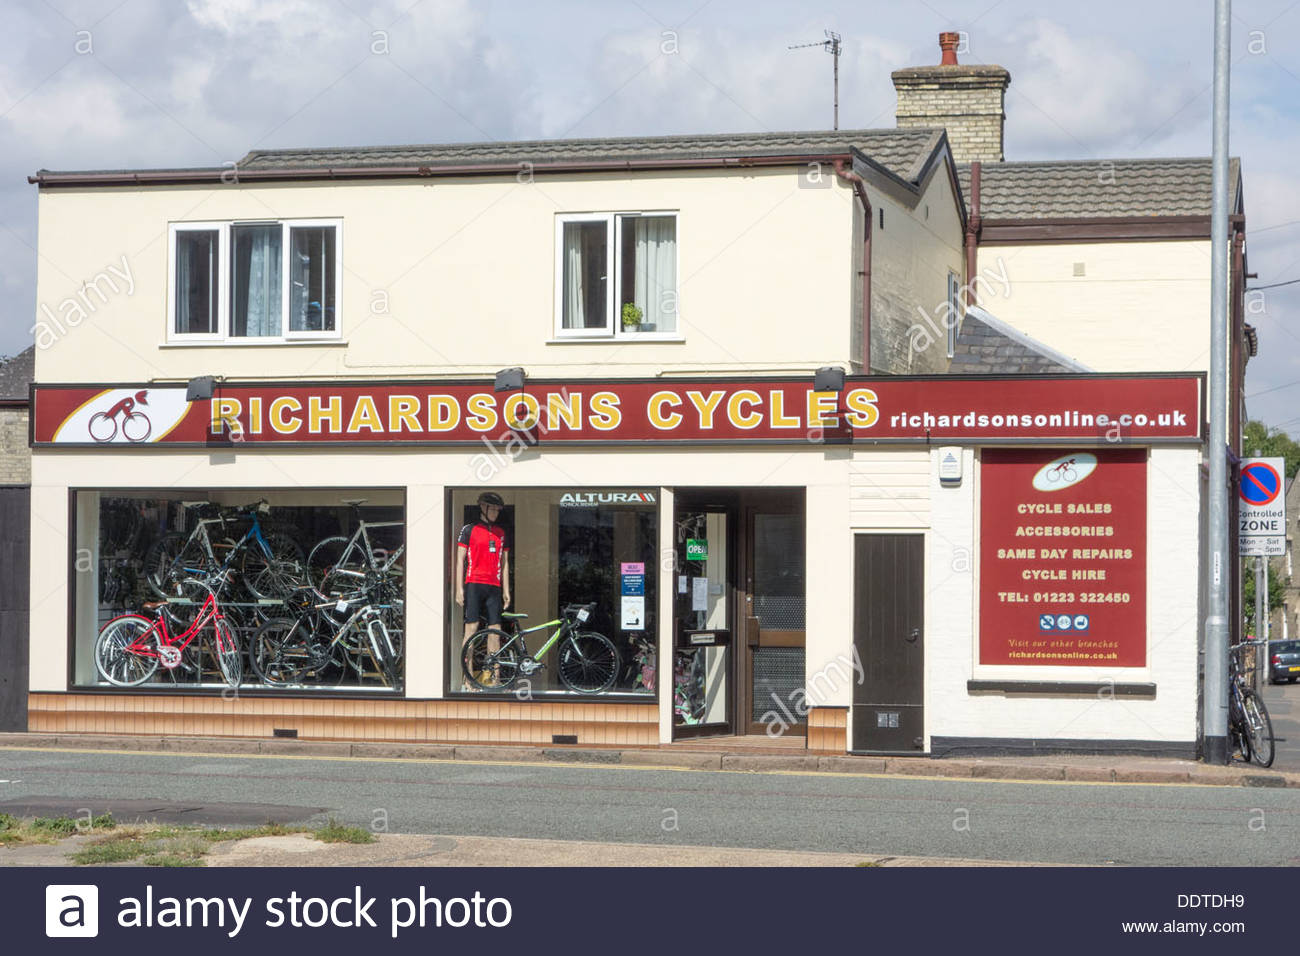 Richardsons Cycles shop on Newmarket Road, Cambridge - Stock Image